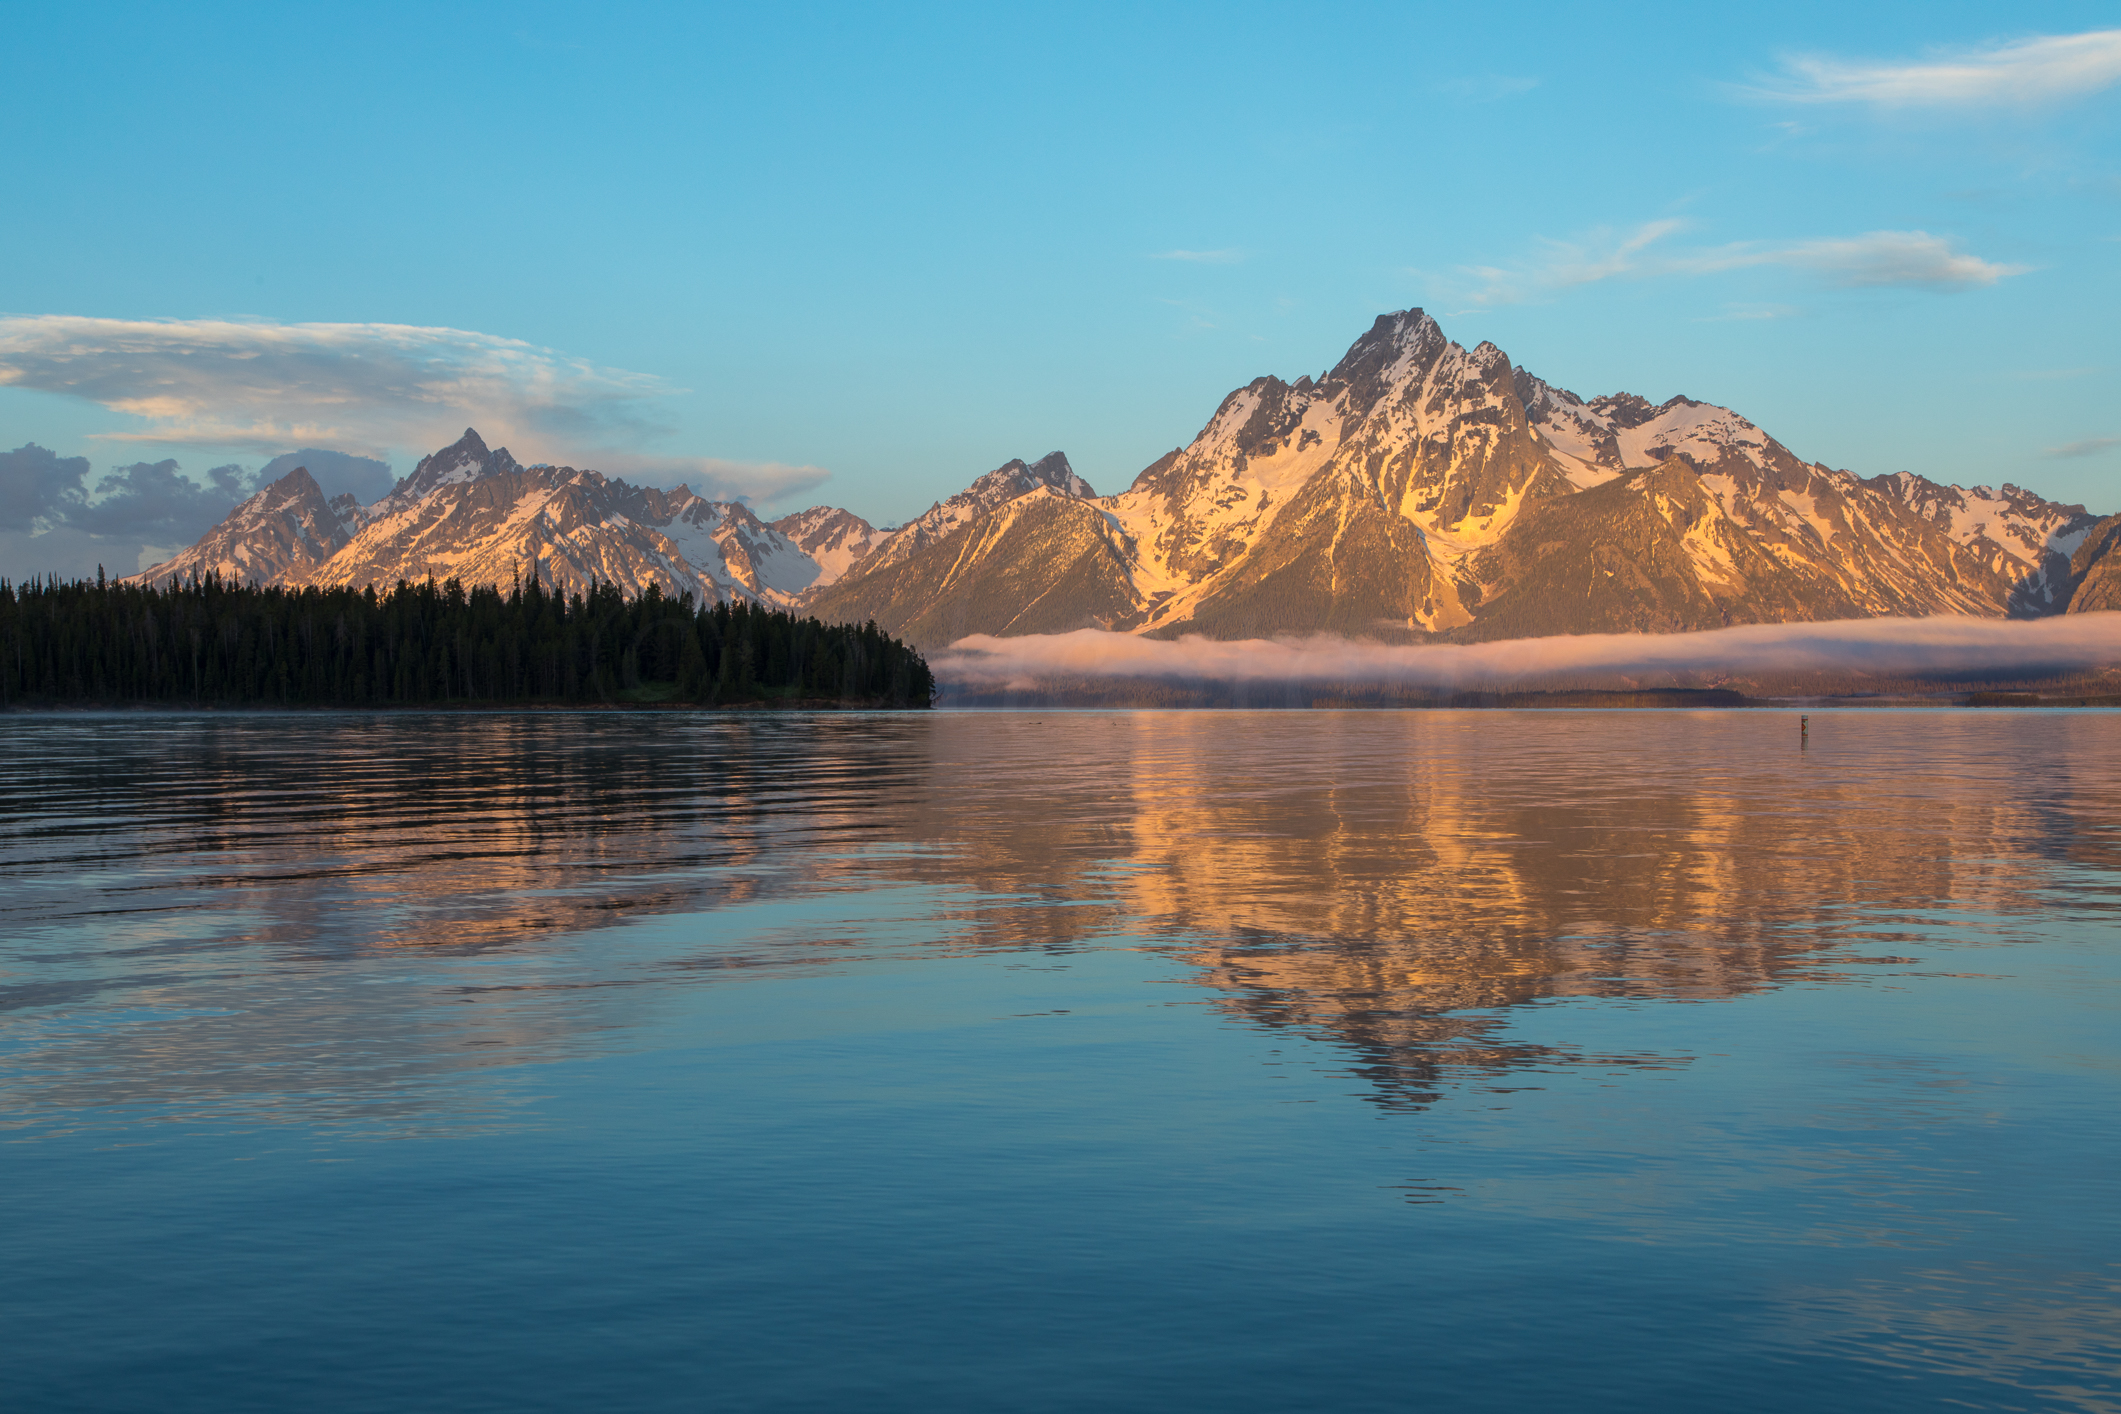 Colter Bay, Image # 3981